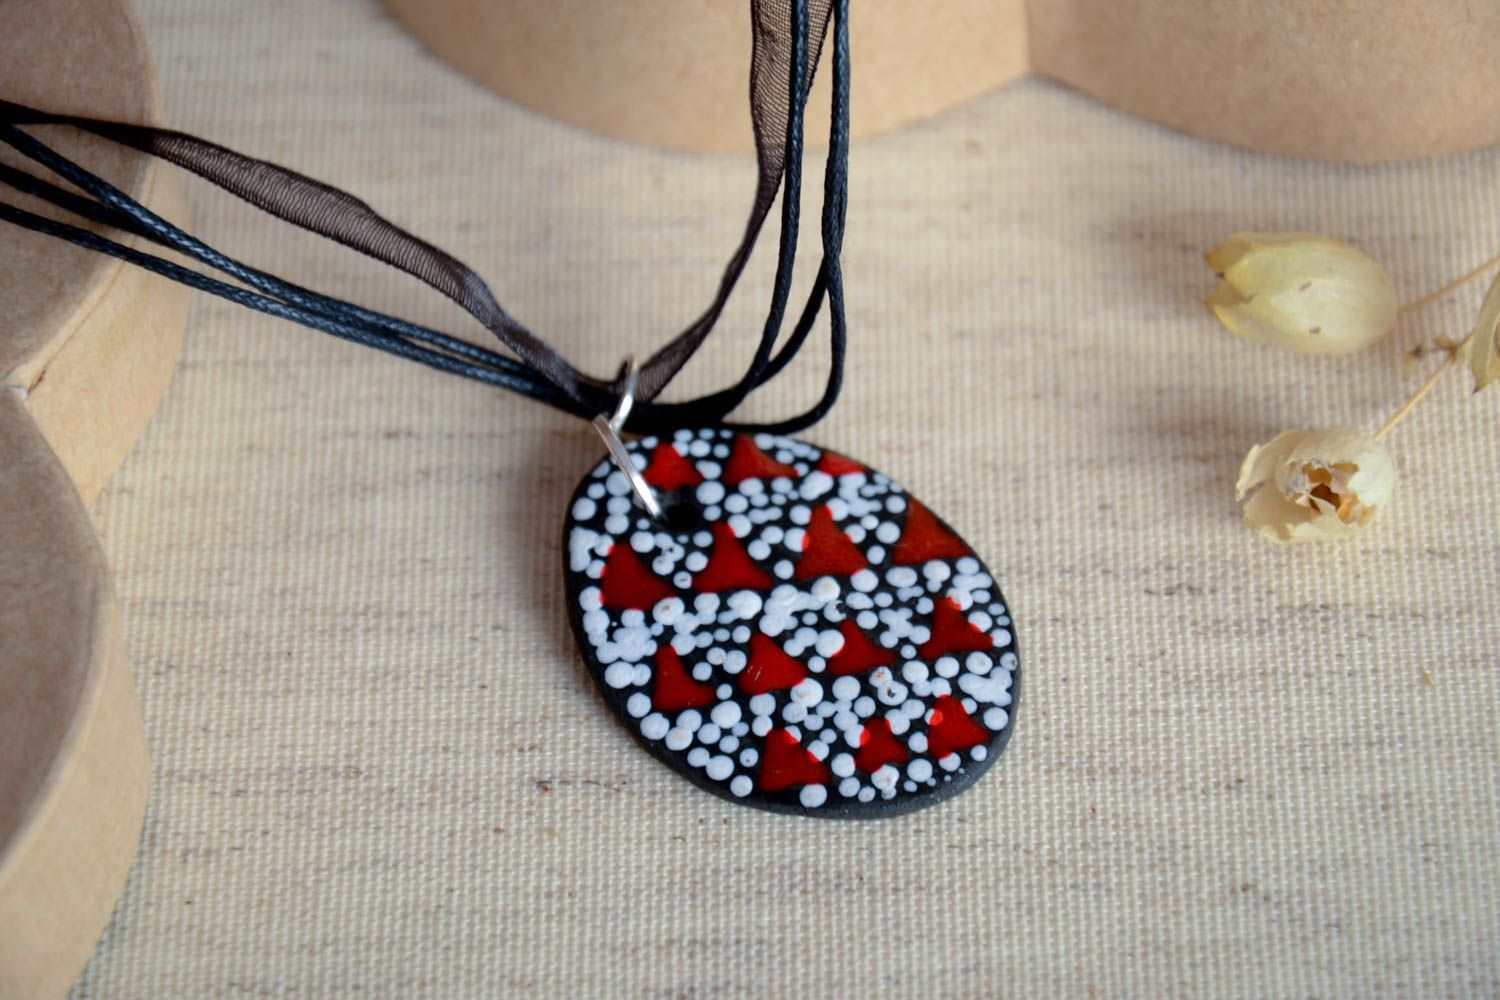 Handmade beautiful pendant unusual ceramic pendant elegant natural jewelry photo 1